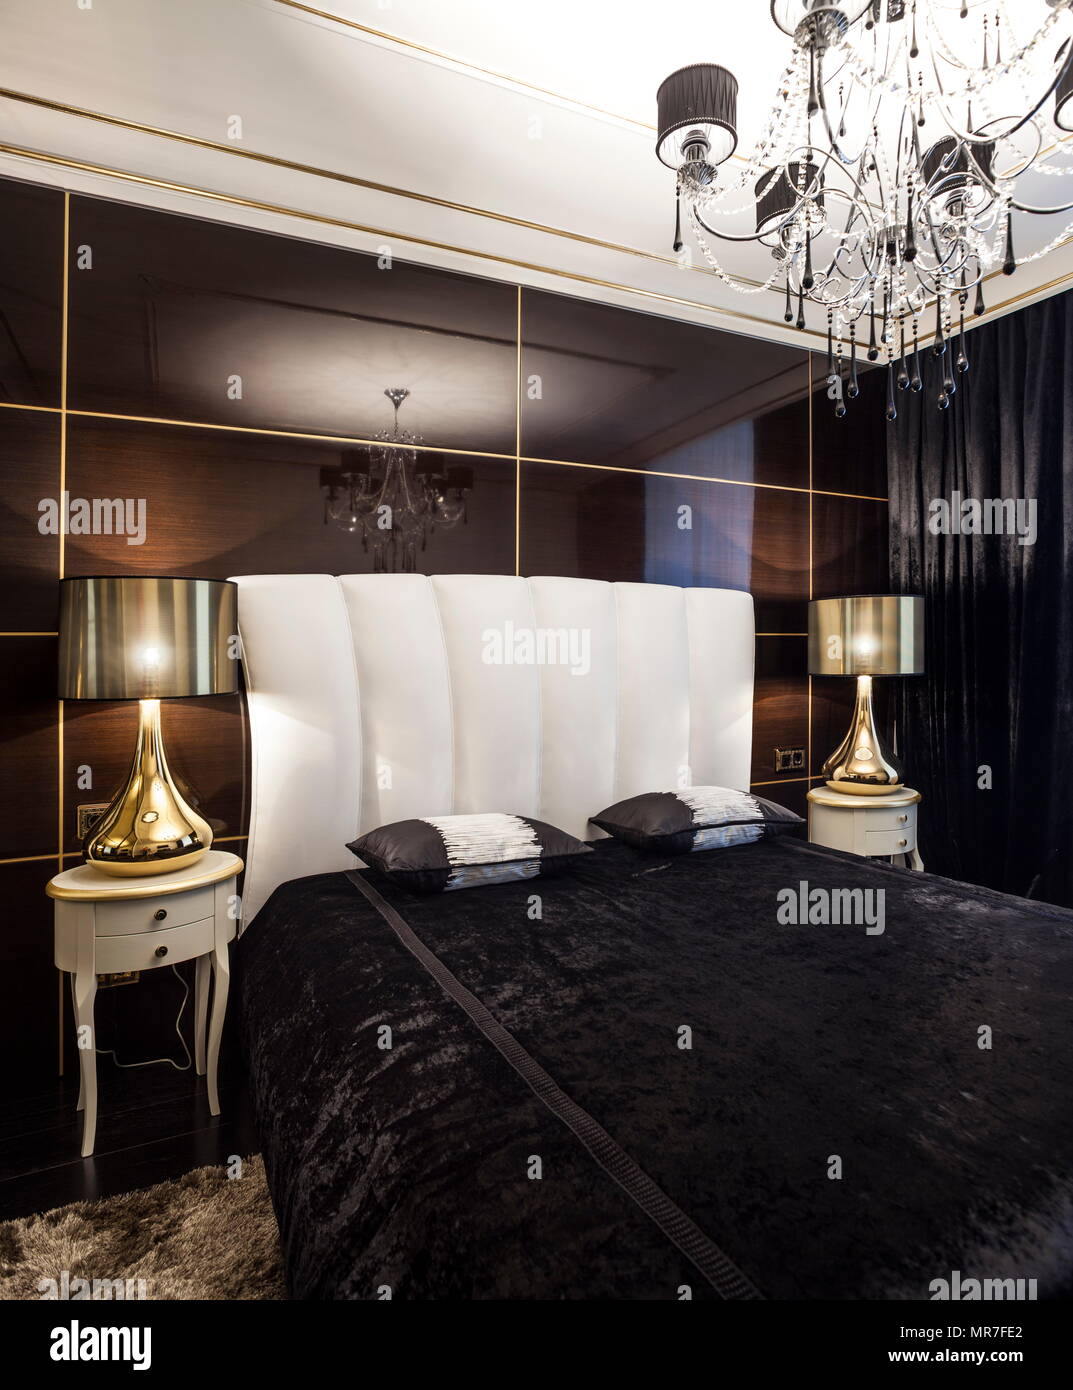 Elegant bedroom black bed with white headboard and golden ...